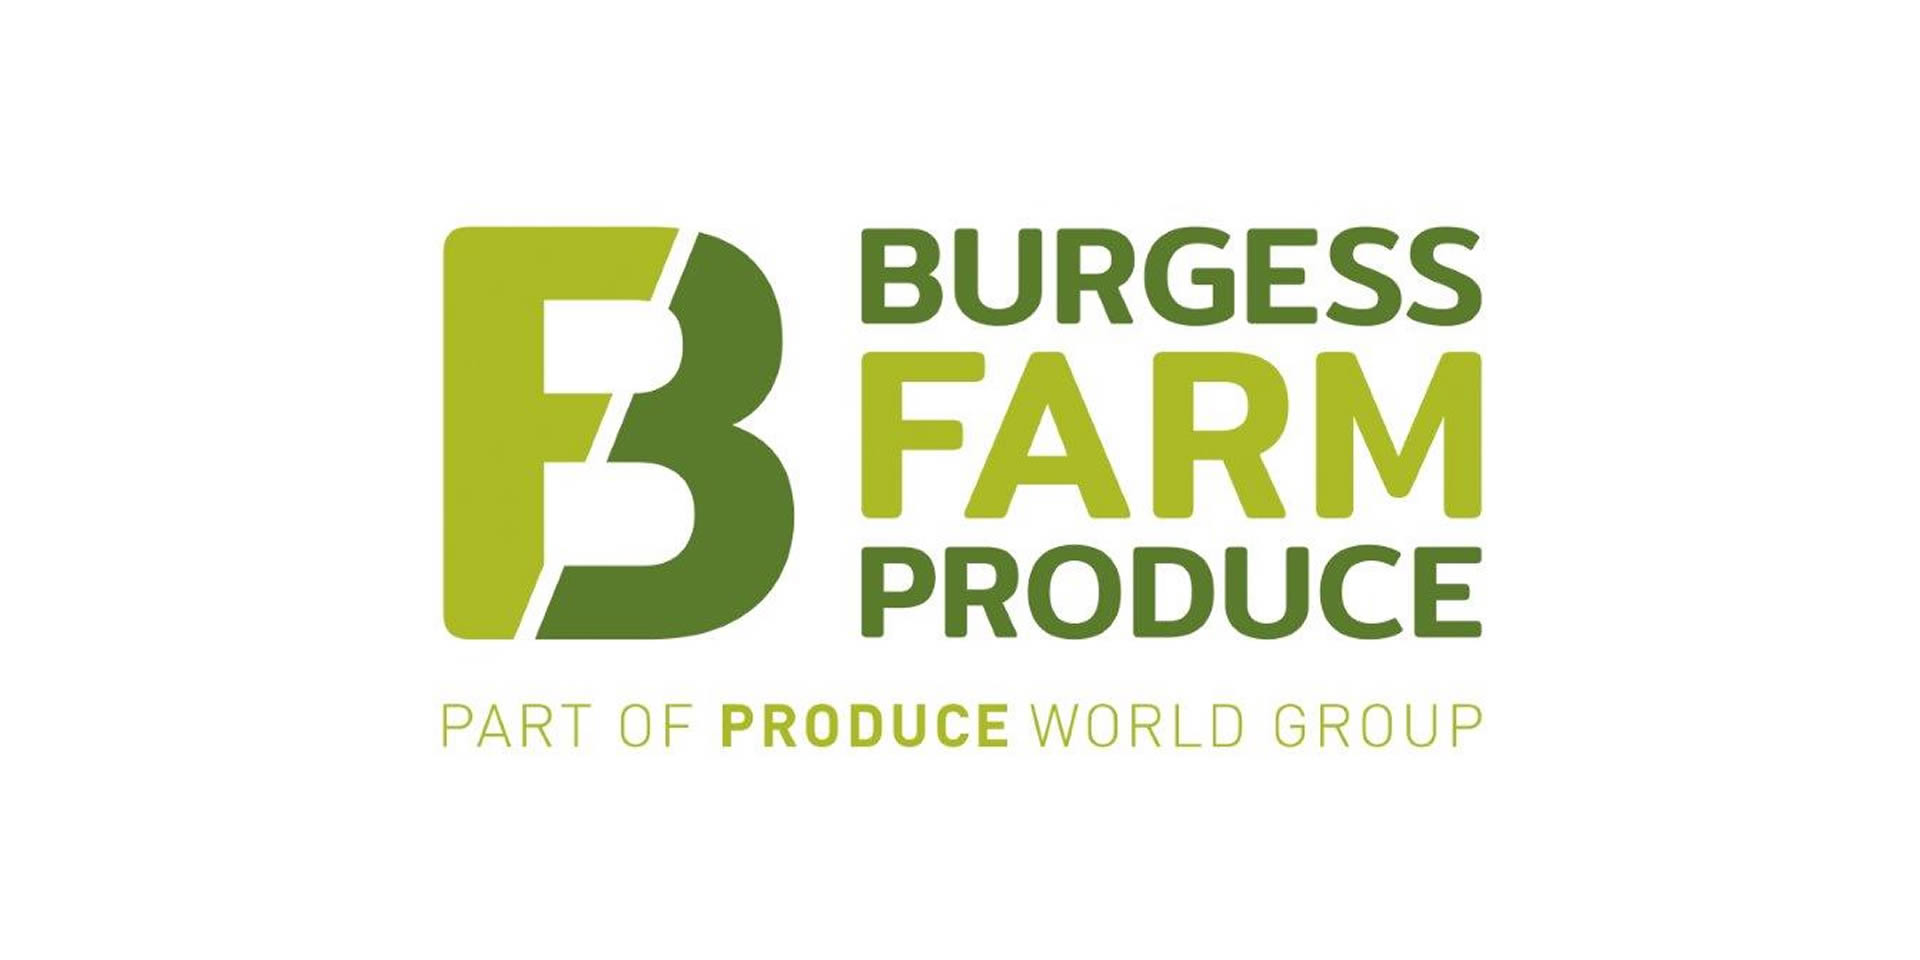 Burgess Farm Produce logo